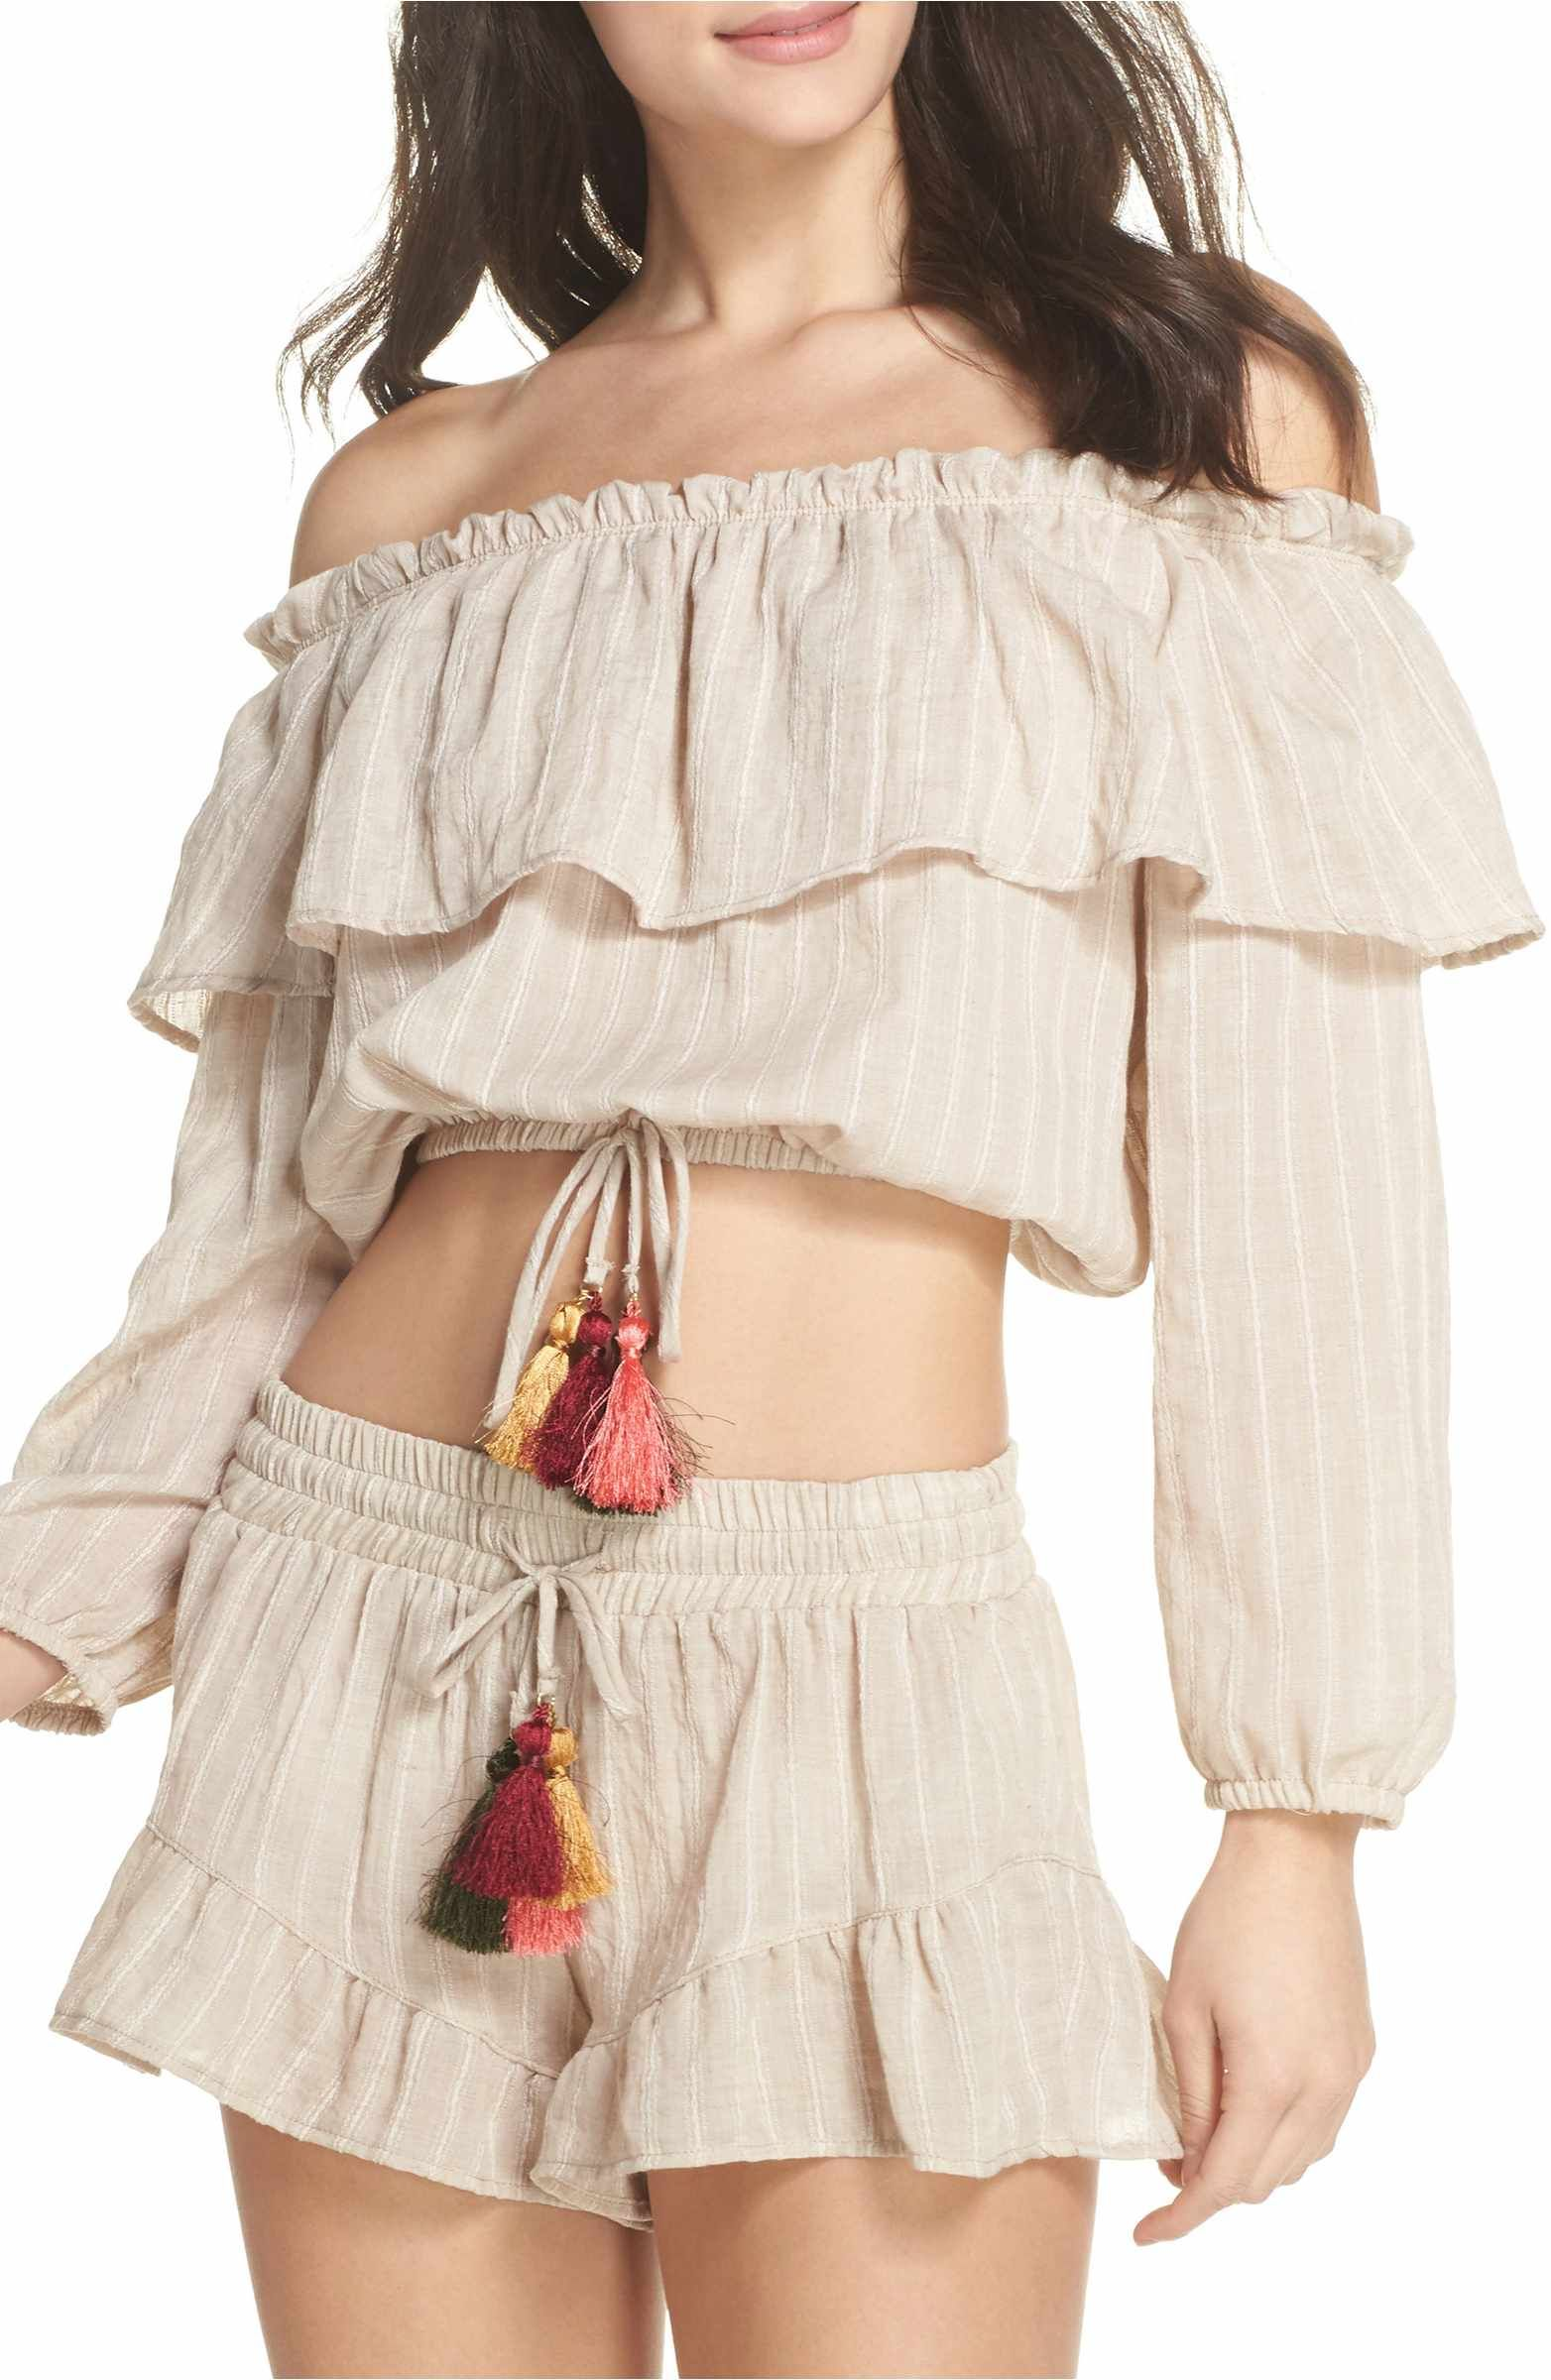 5aee92b15e2 Main Image - Surf Gypsy Ruffle Cover-Up Top Daily Look, Off Shoulder Blouse